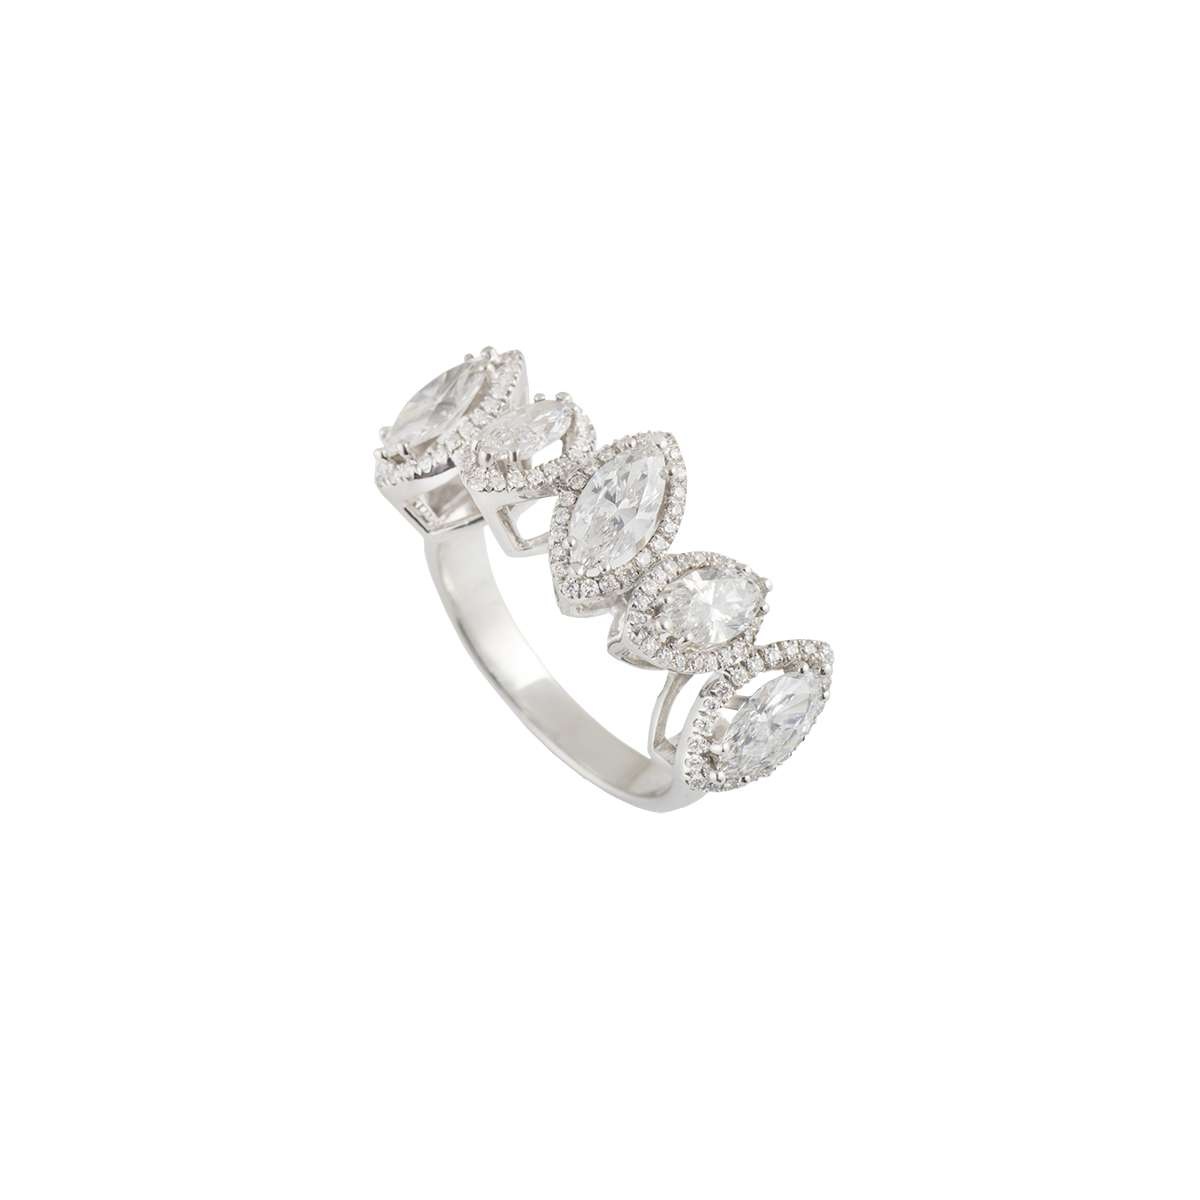 White Gold Marquise Diamond Ring 3.10ct G/VS